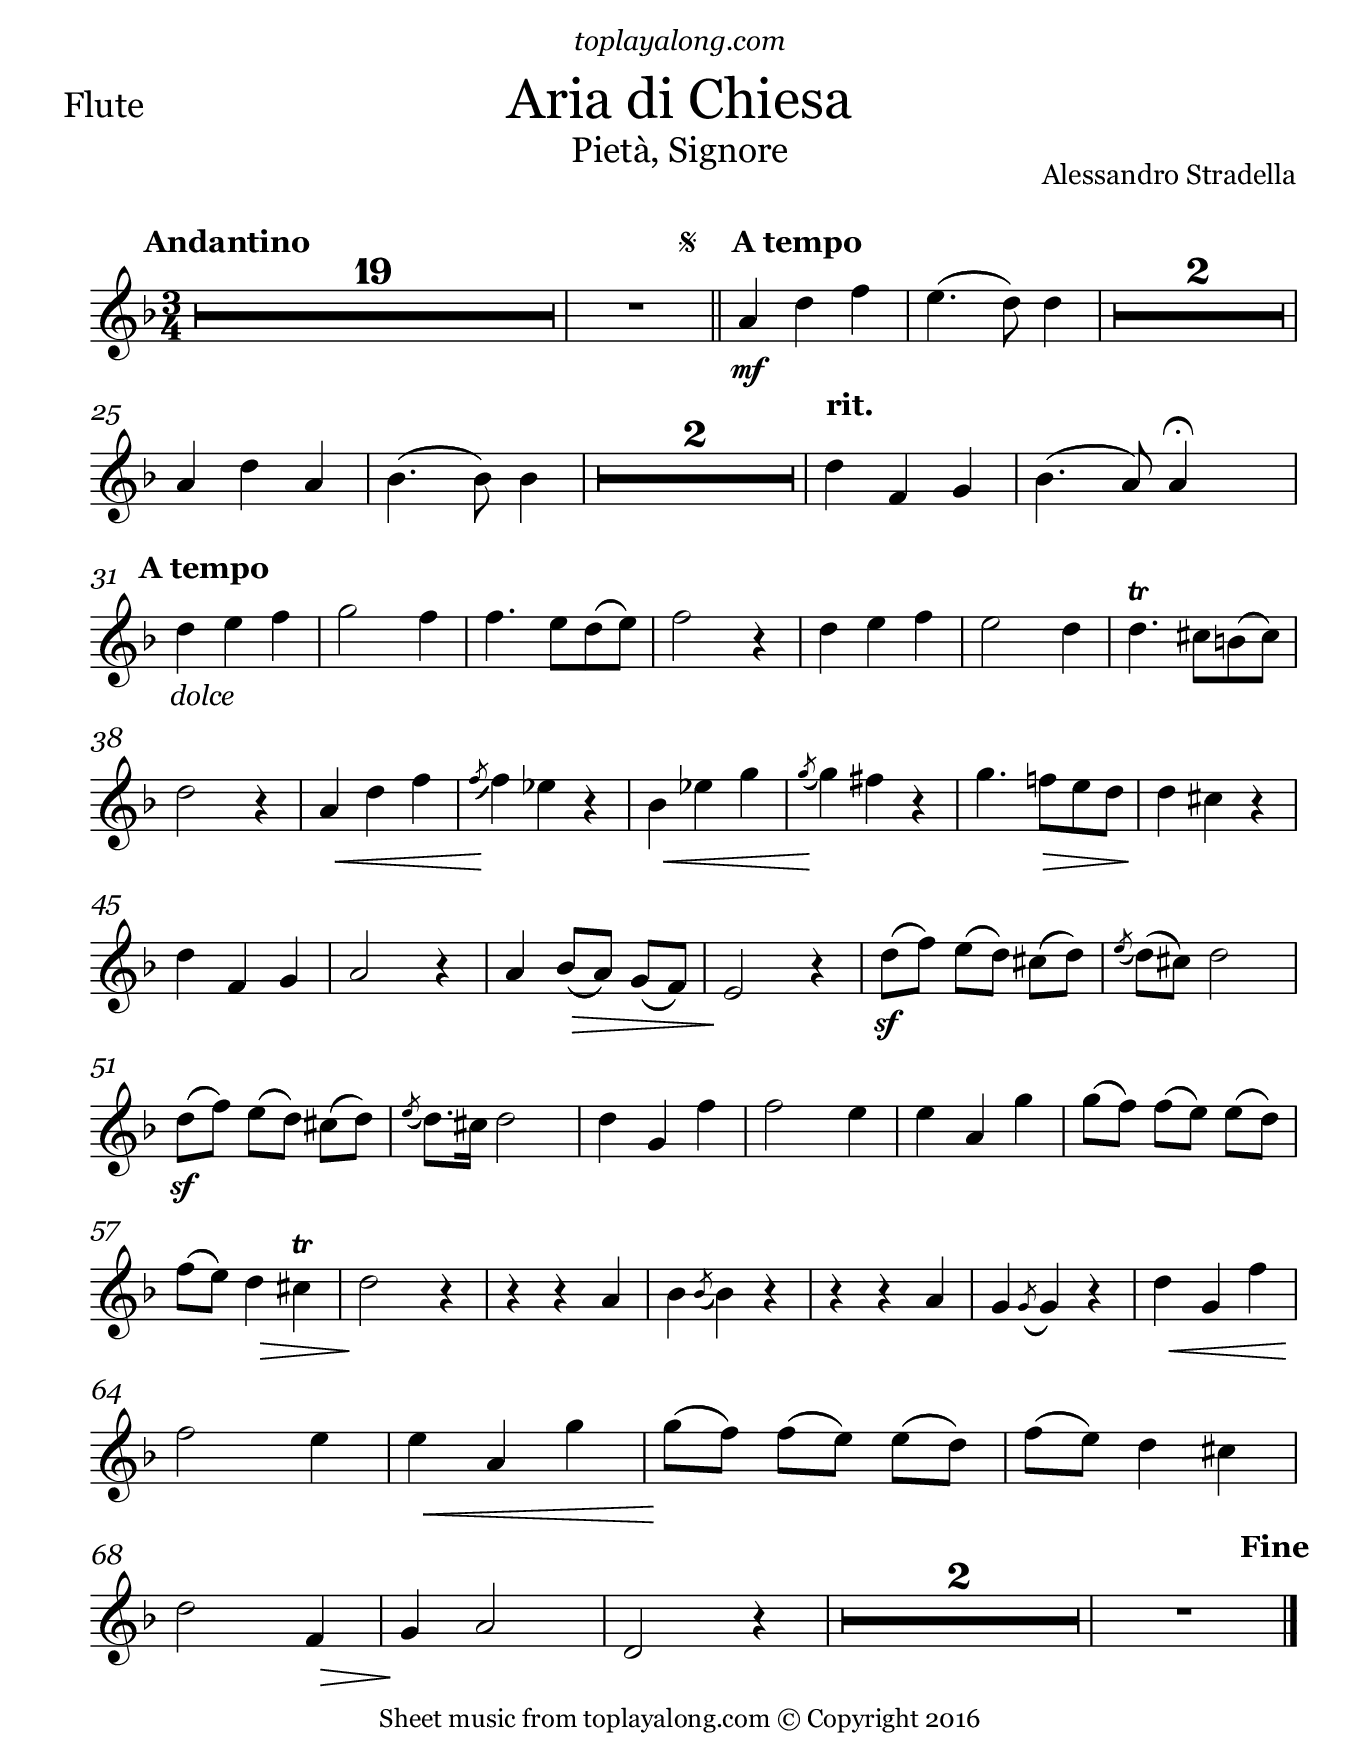 Aria di Chiesa (Pietà, Signore) by Stradella. Sheet music for Flute, page 1.